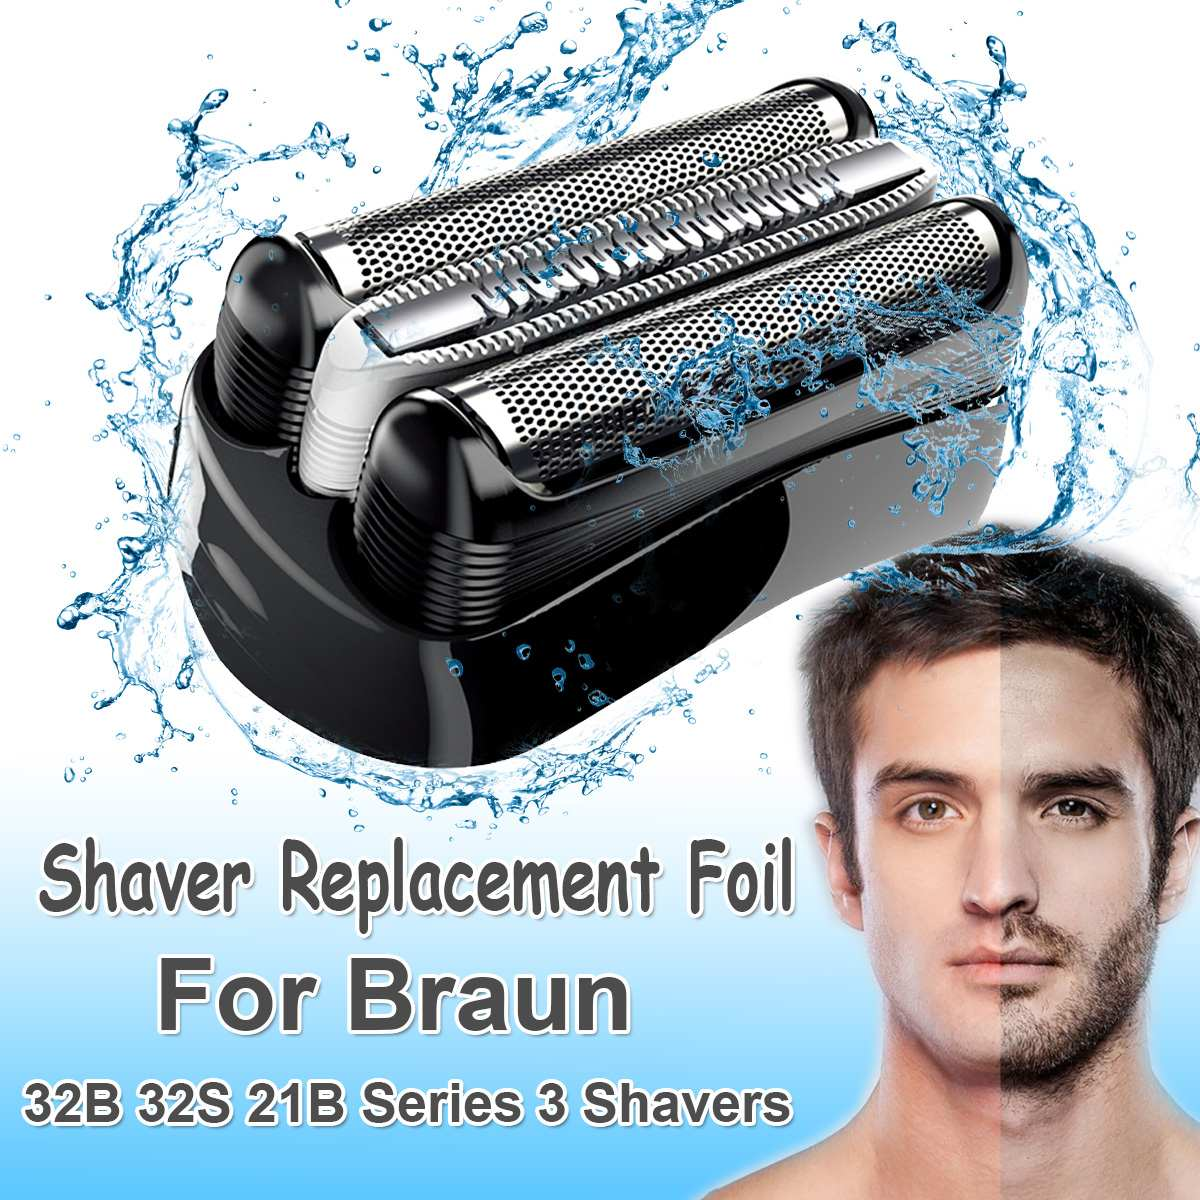 replacement-shaver-foil-head-for-braun-32b-32s-21b-for-cruzer6-series-3-301s-310s-320s-360s-3000s-3010s-3020s-350cc-head-blade